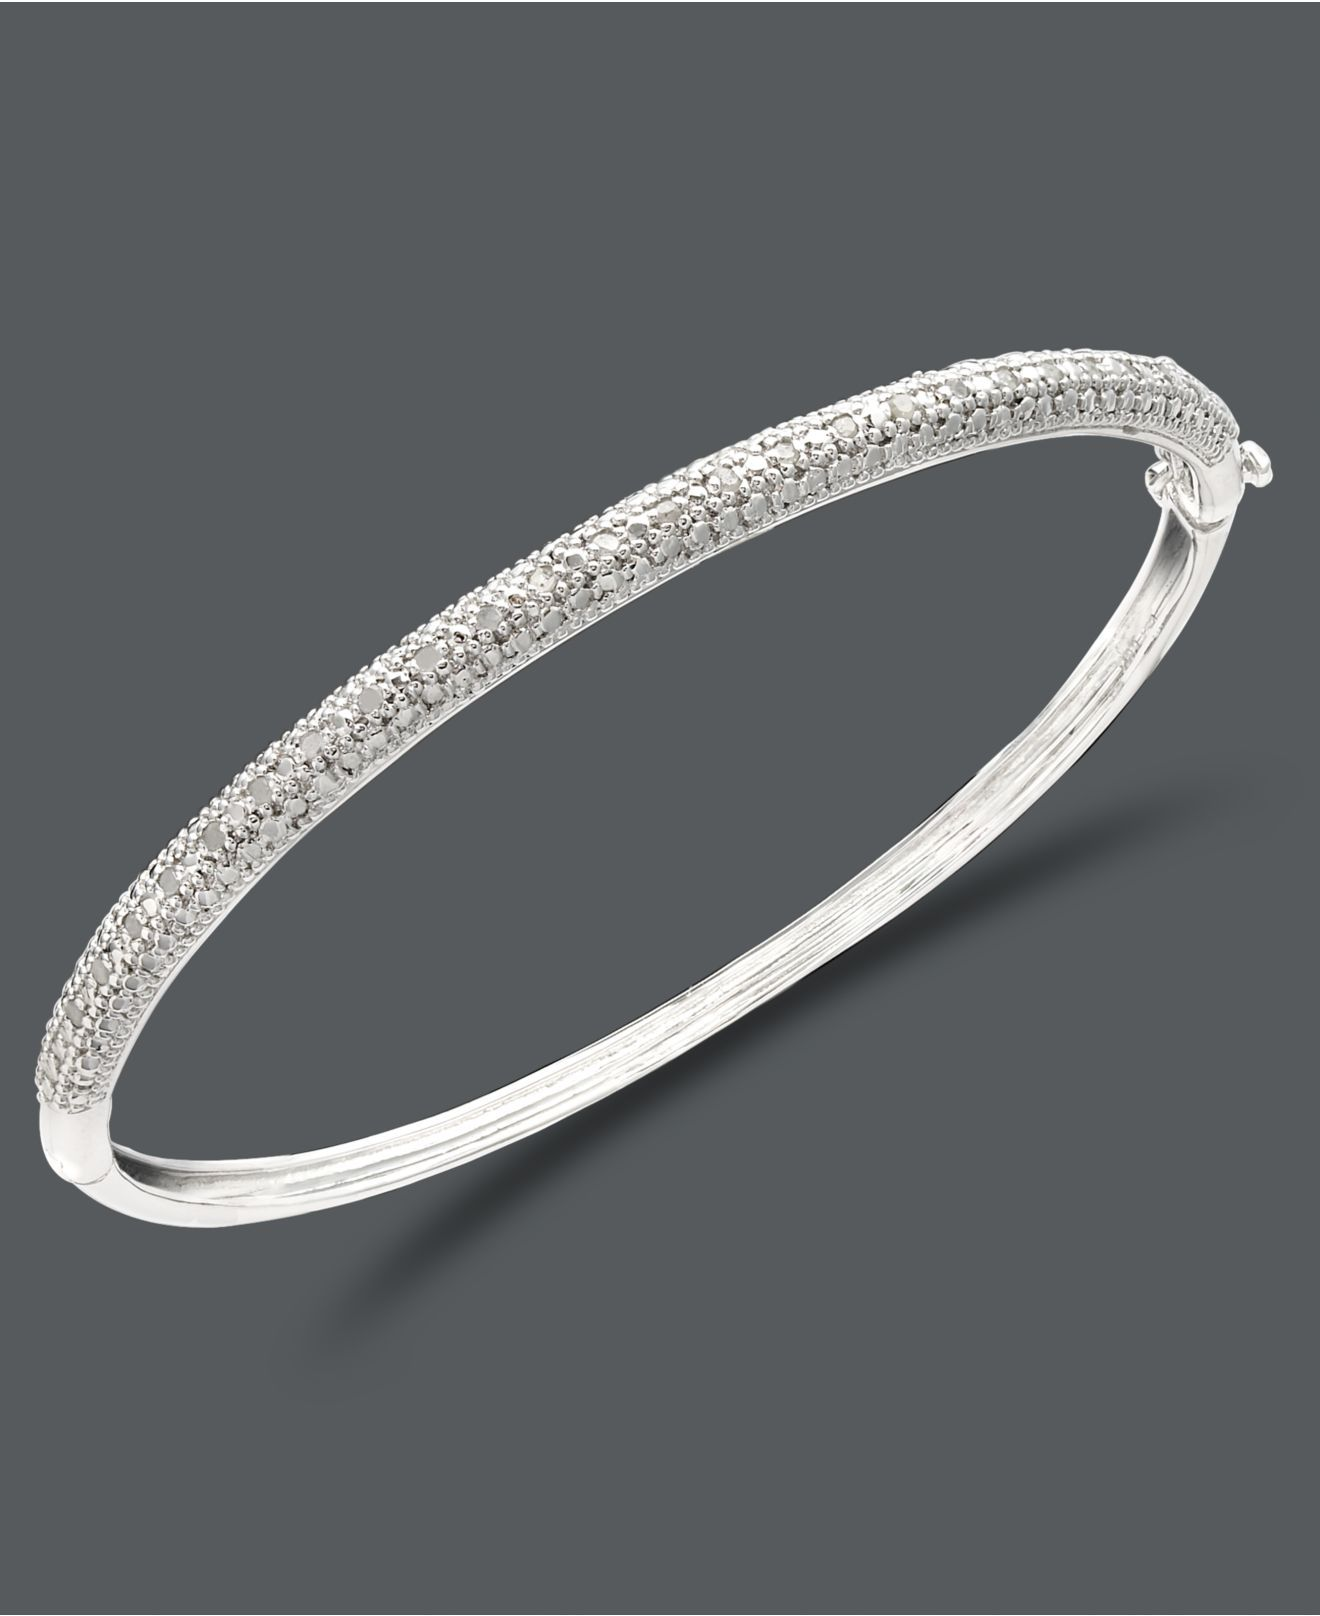 bangle victorian silver bangles bracelet sterling ray product diamond maison